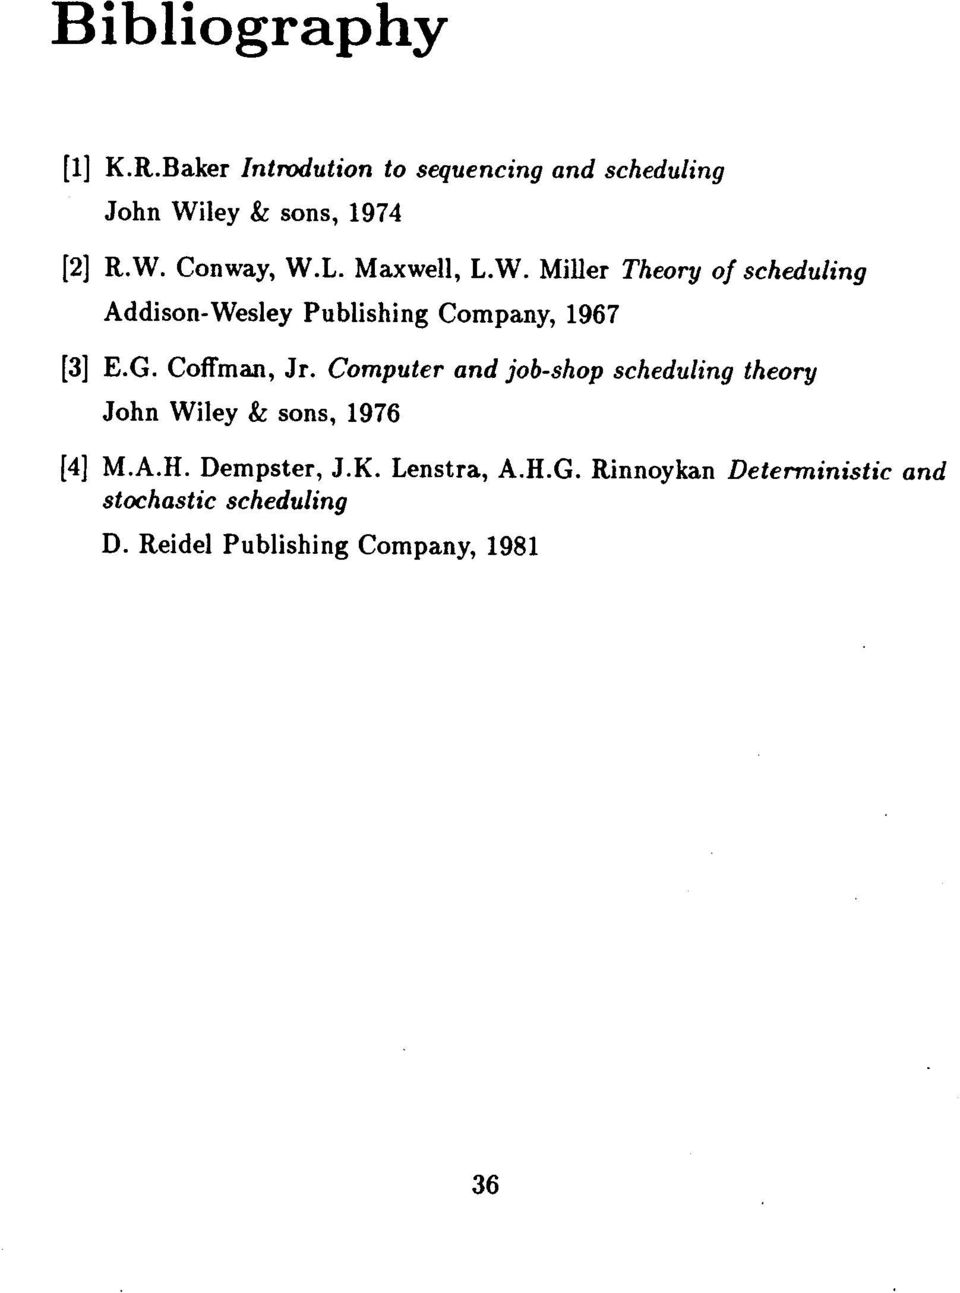 Coffman, Jr. Computer and job-shop scheduling theory John Wiley & sons, 1976 [4] M.A.H. Dempster, J.K.